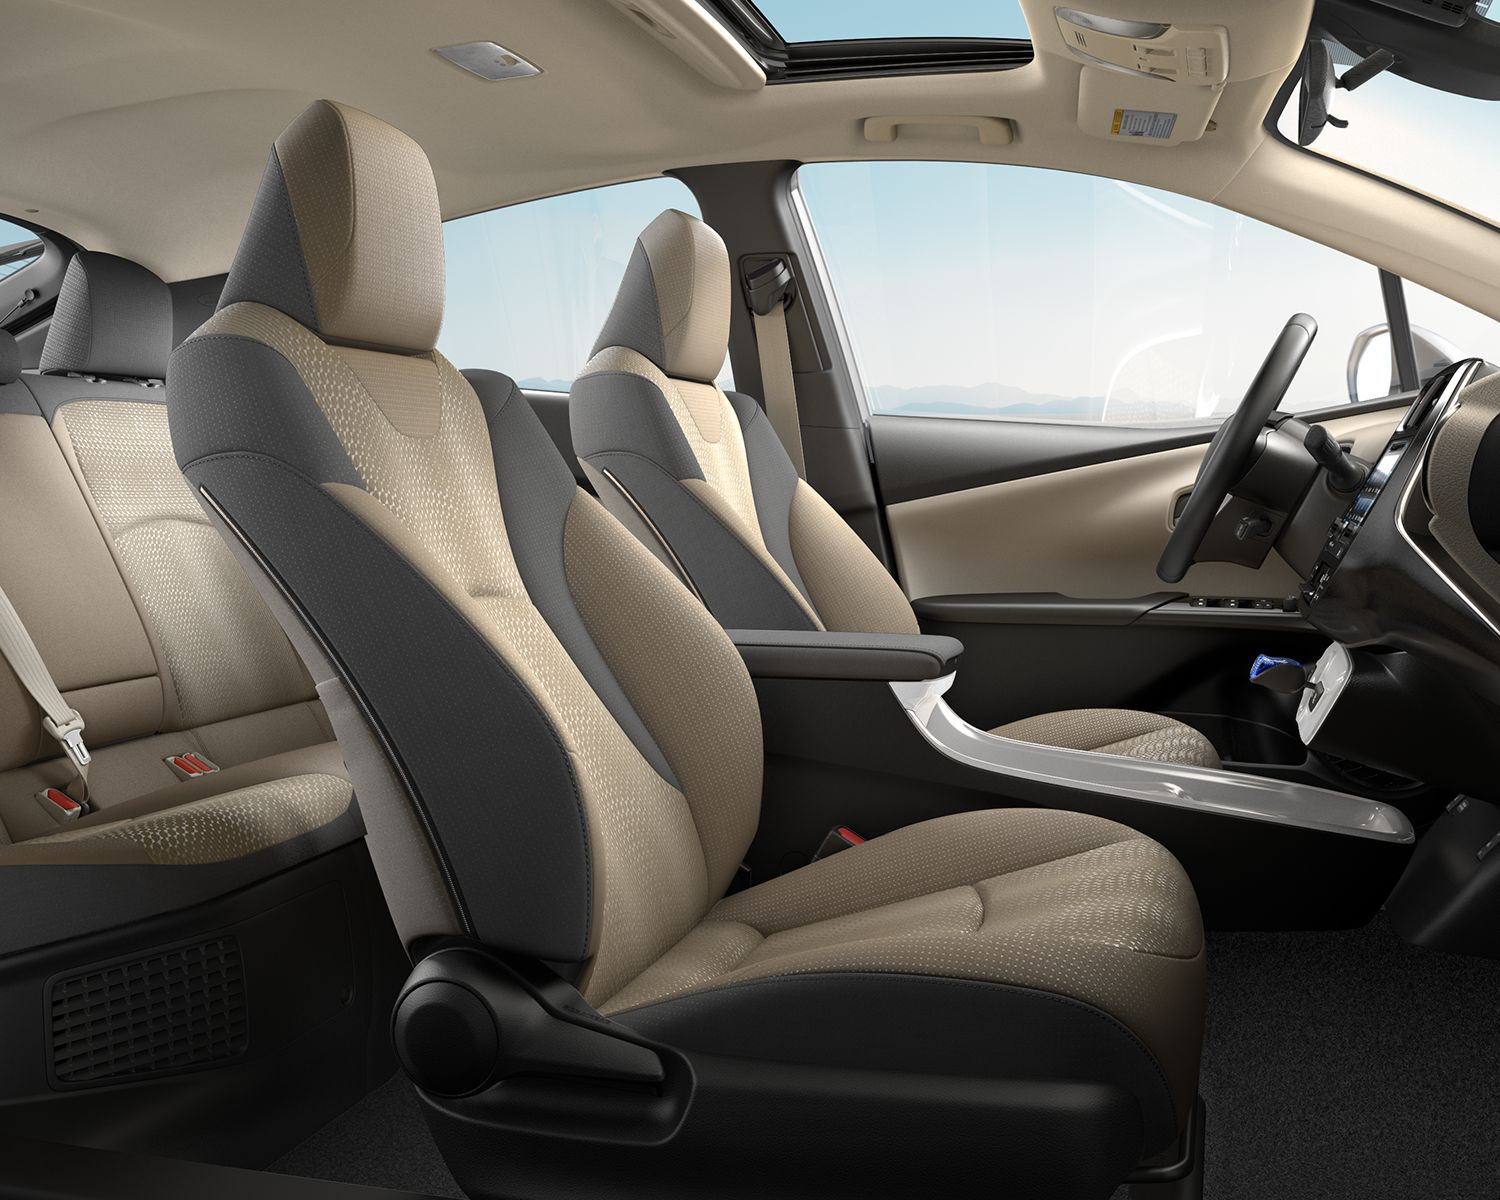 toyota-2018-prius-technology-interior-seating-harvest-beige-l